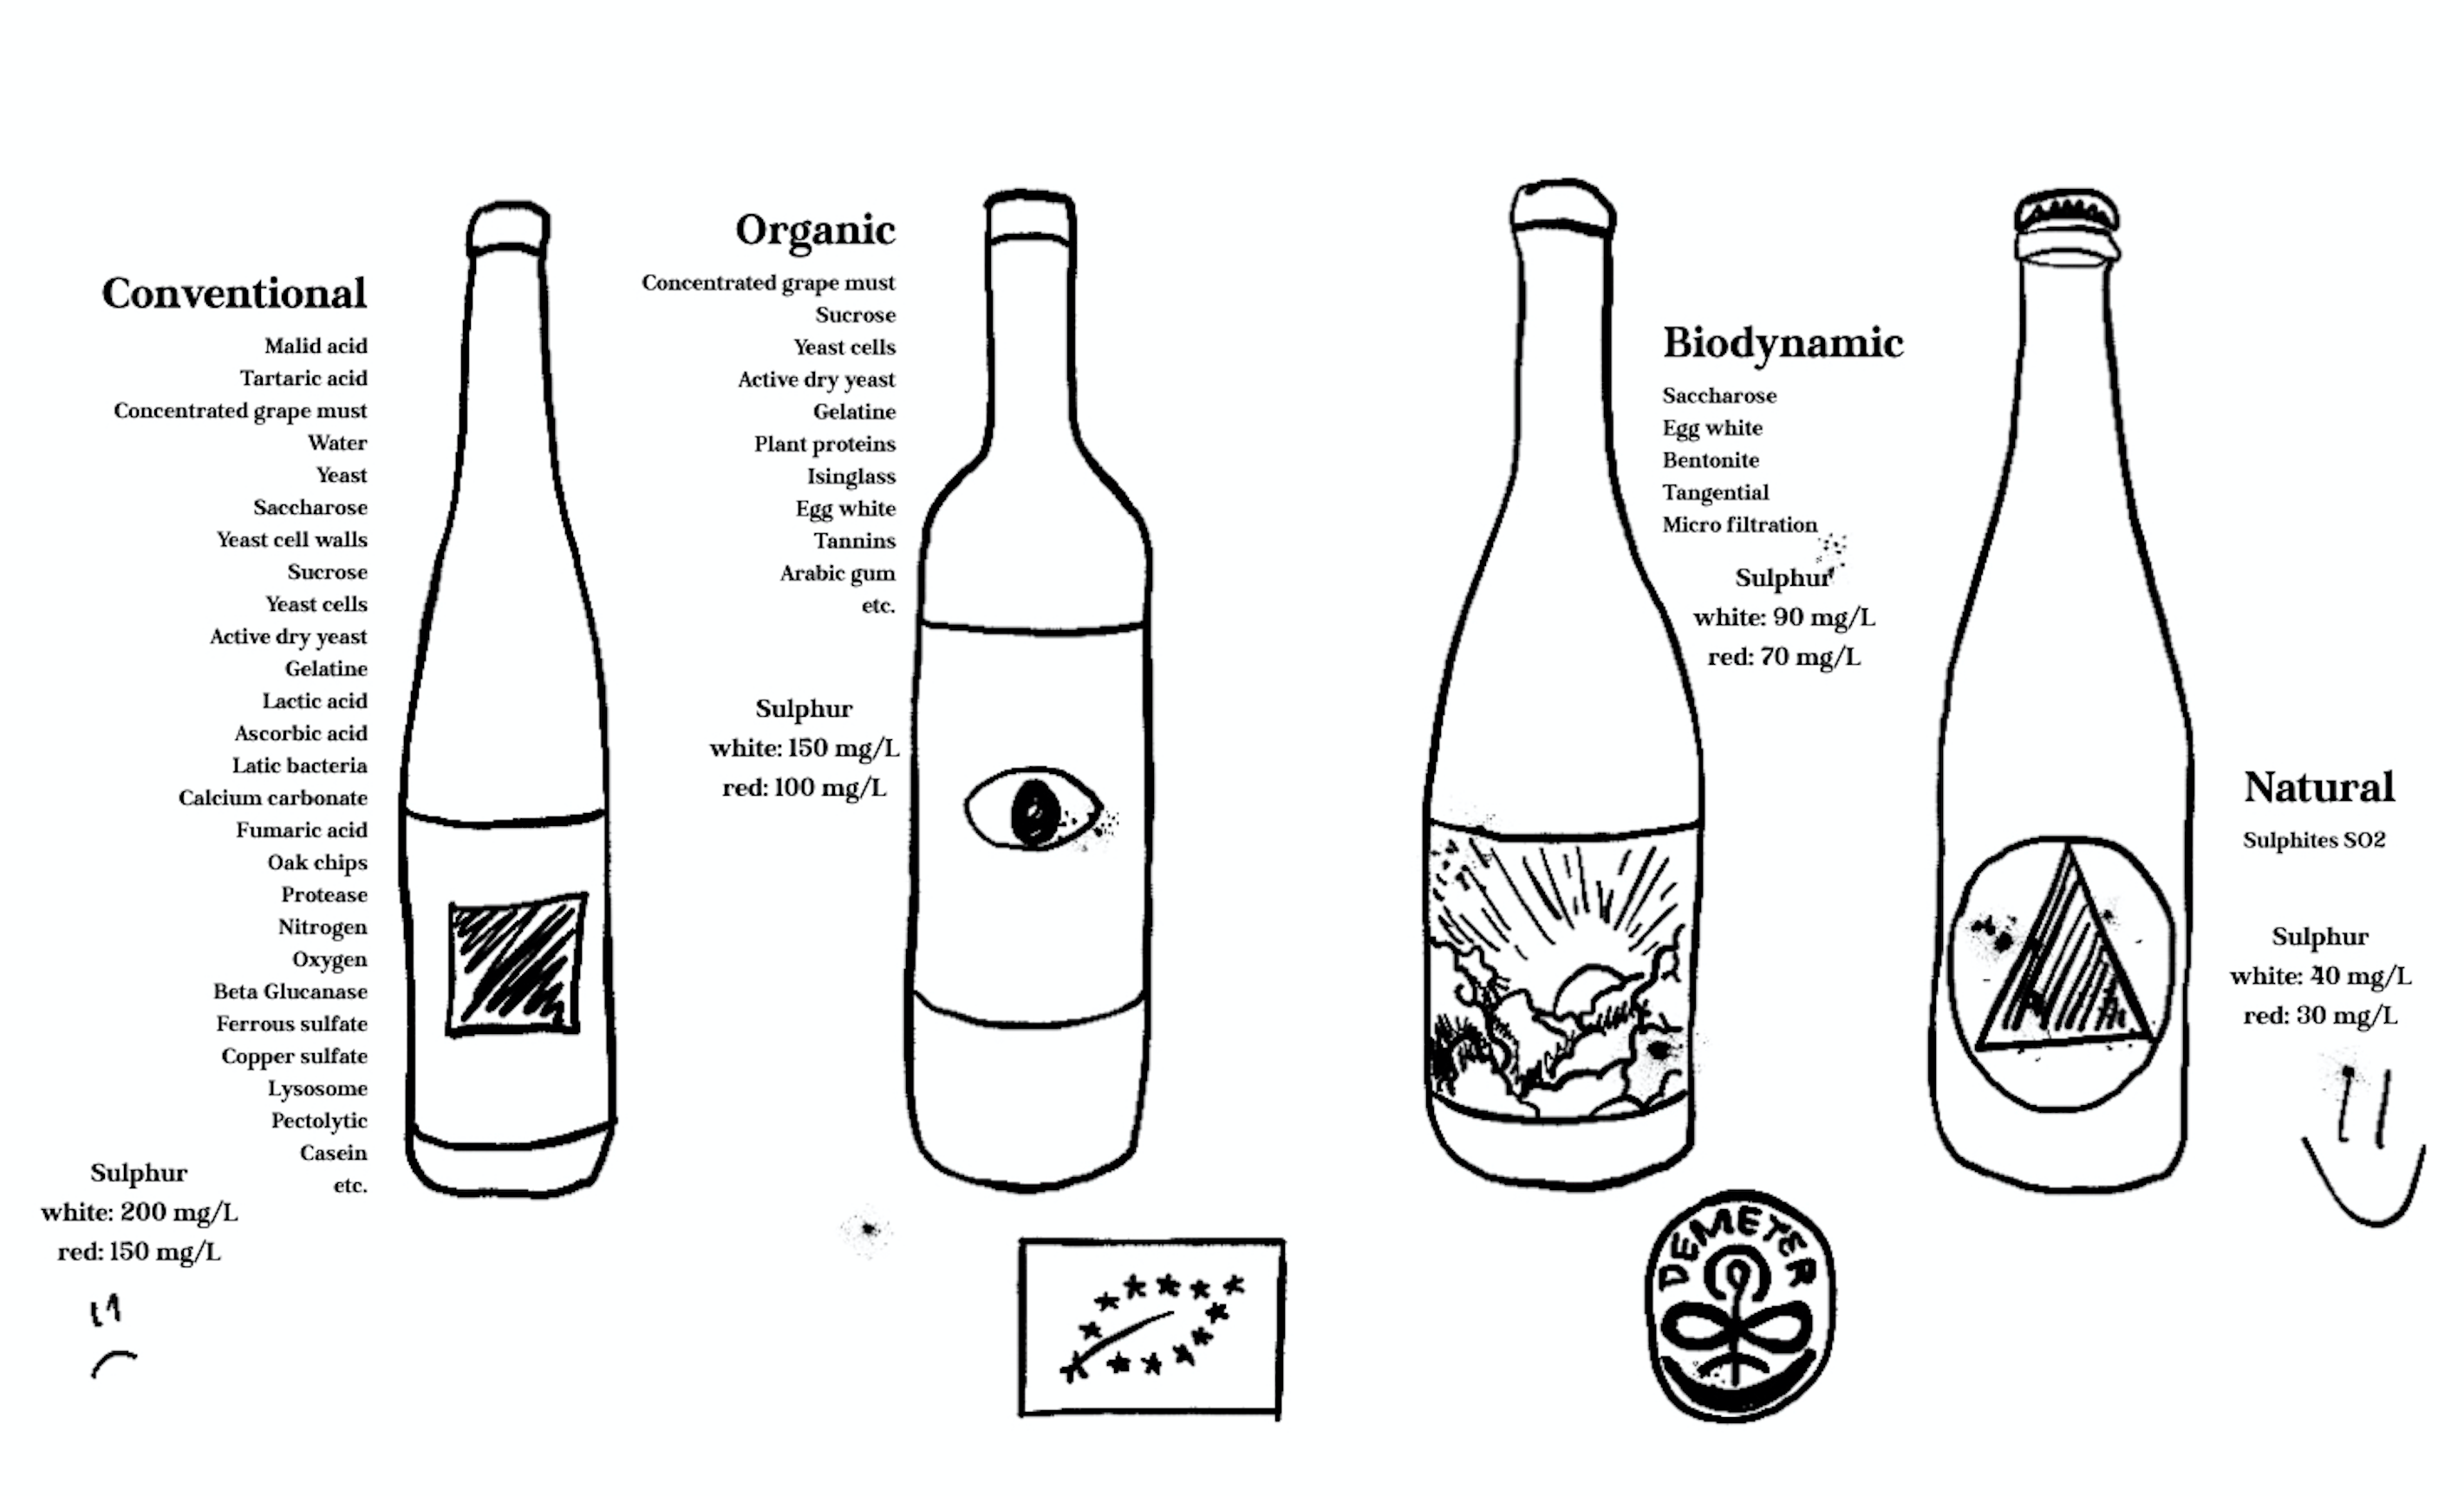 conventional vs organic, biodynamic and natural wine